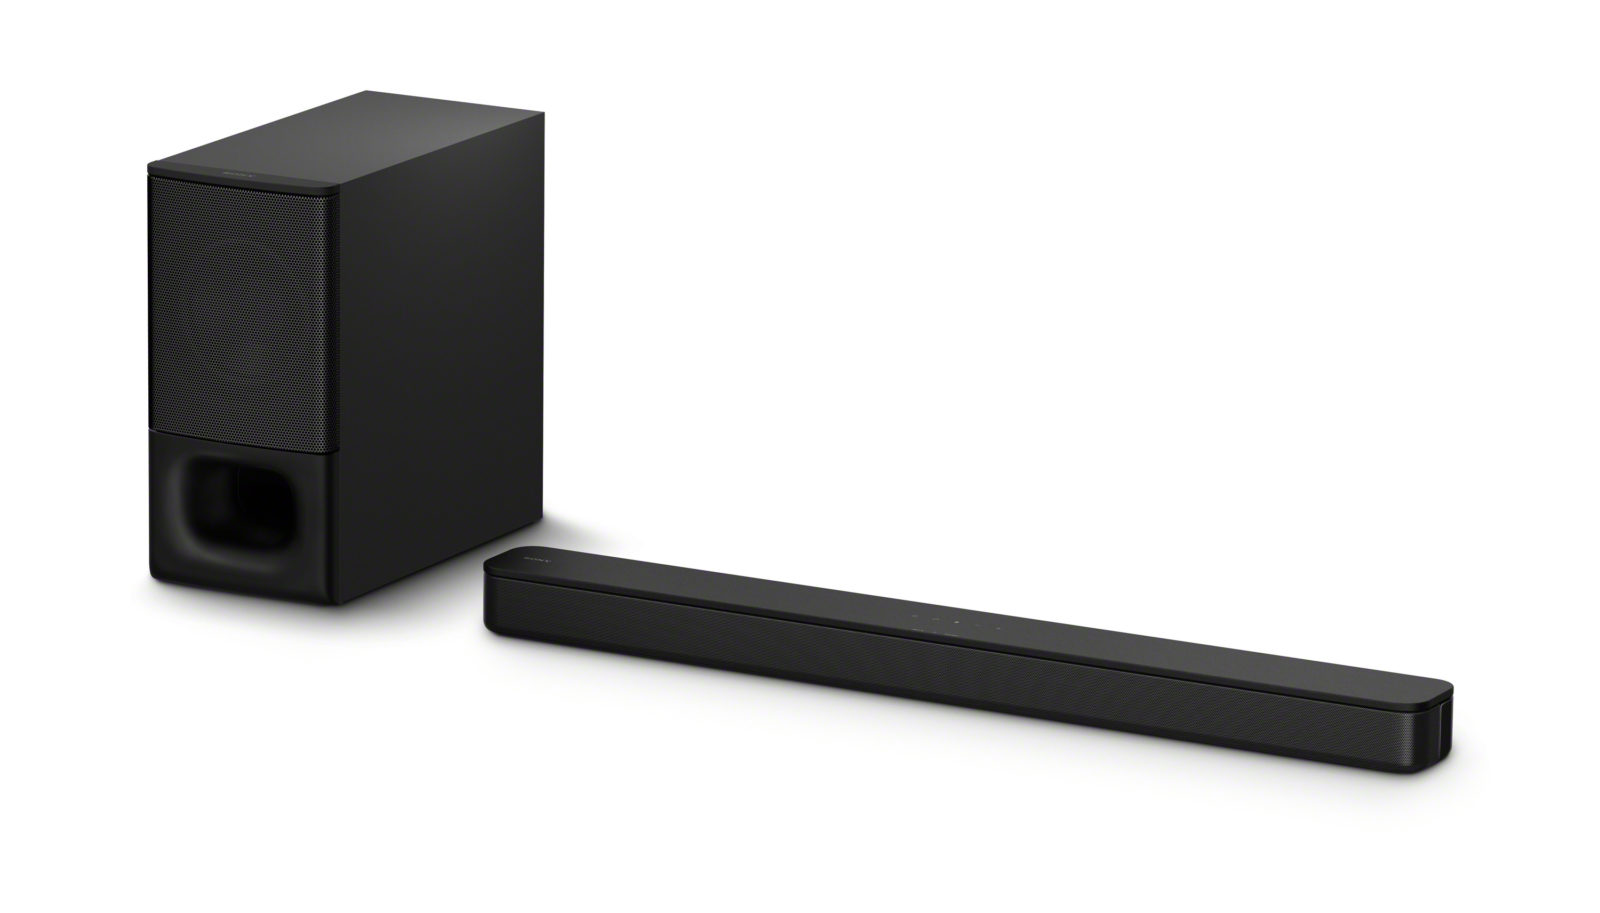 Sony HT-S350 soundbar